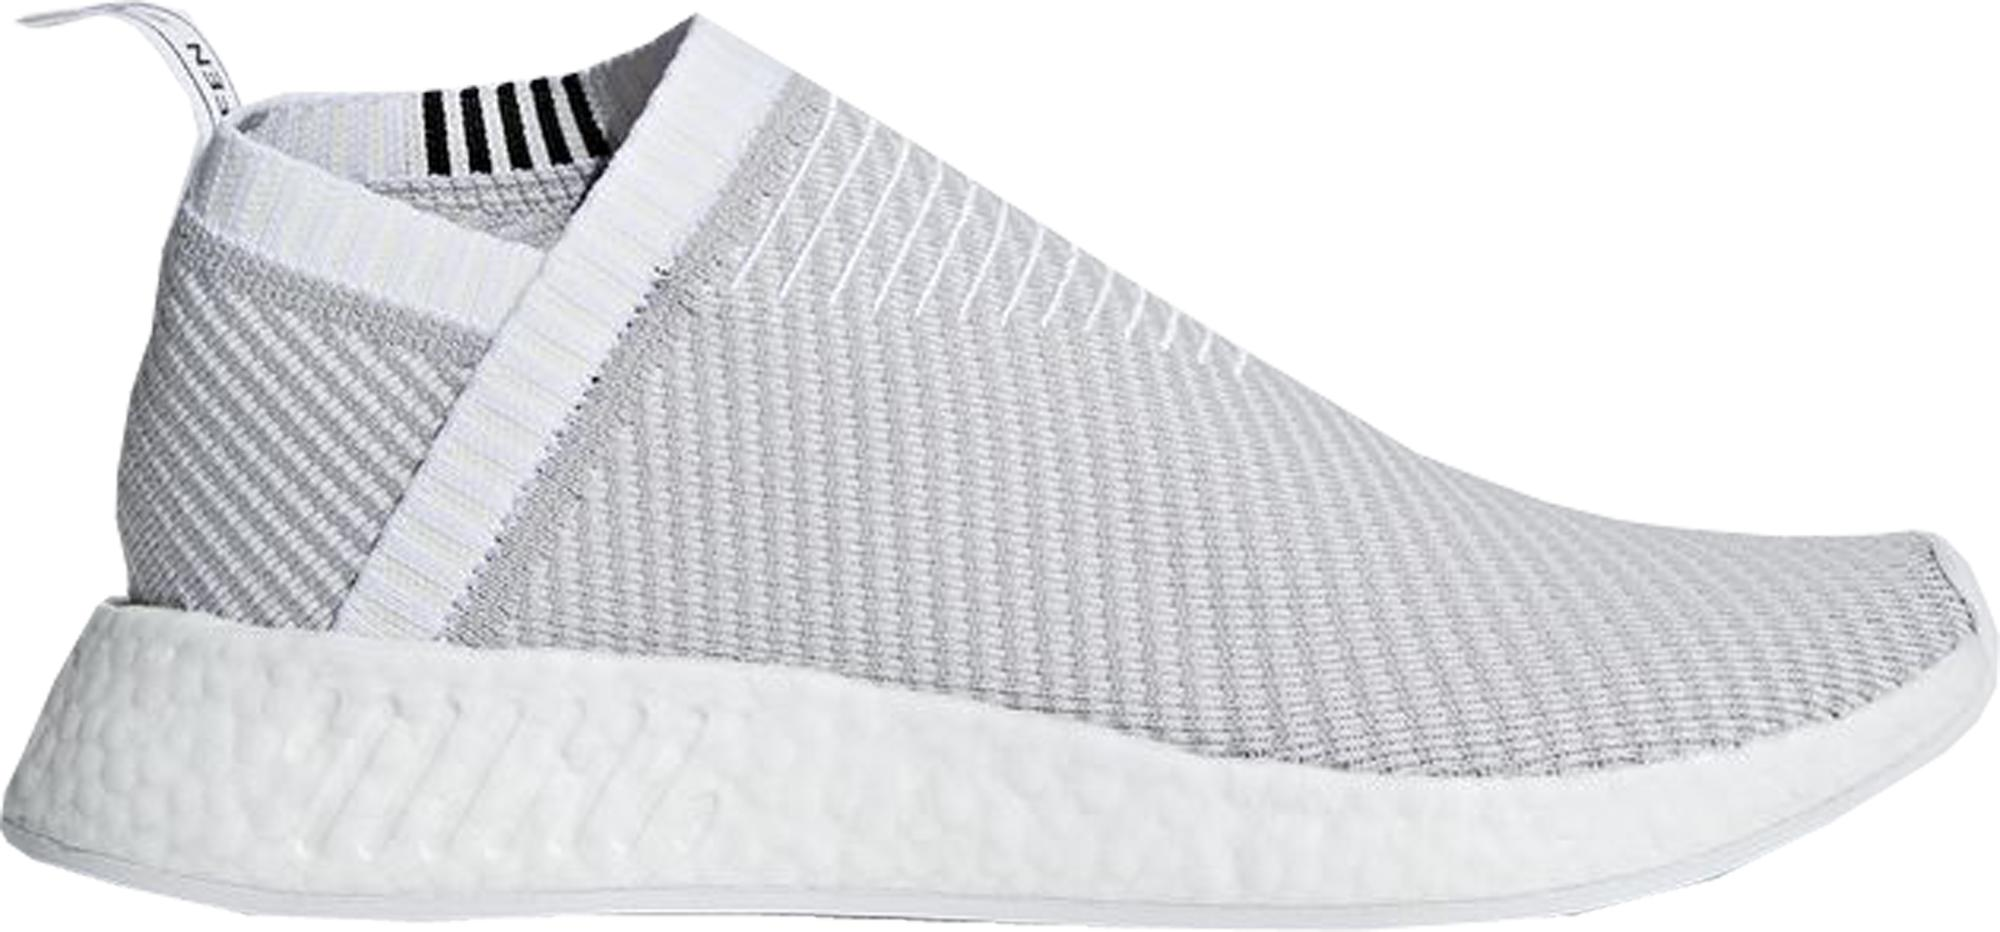 adidas Nmd Cs2 Cloud White Grey Two in